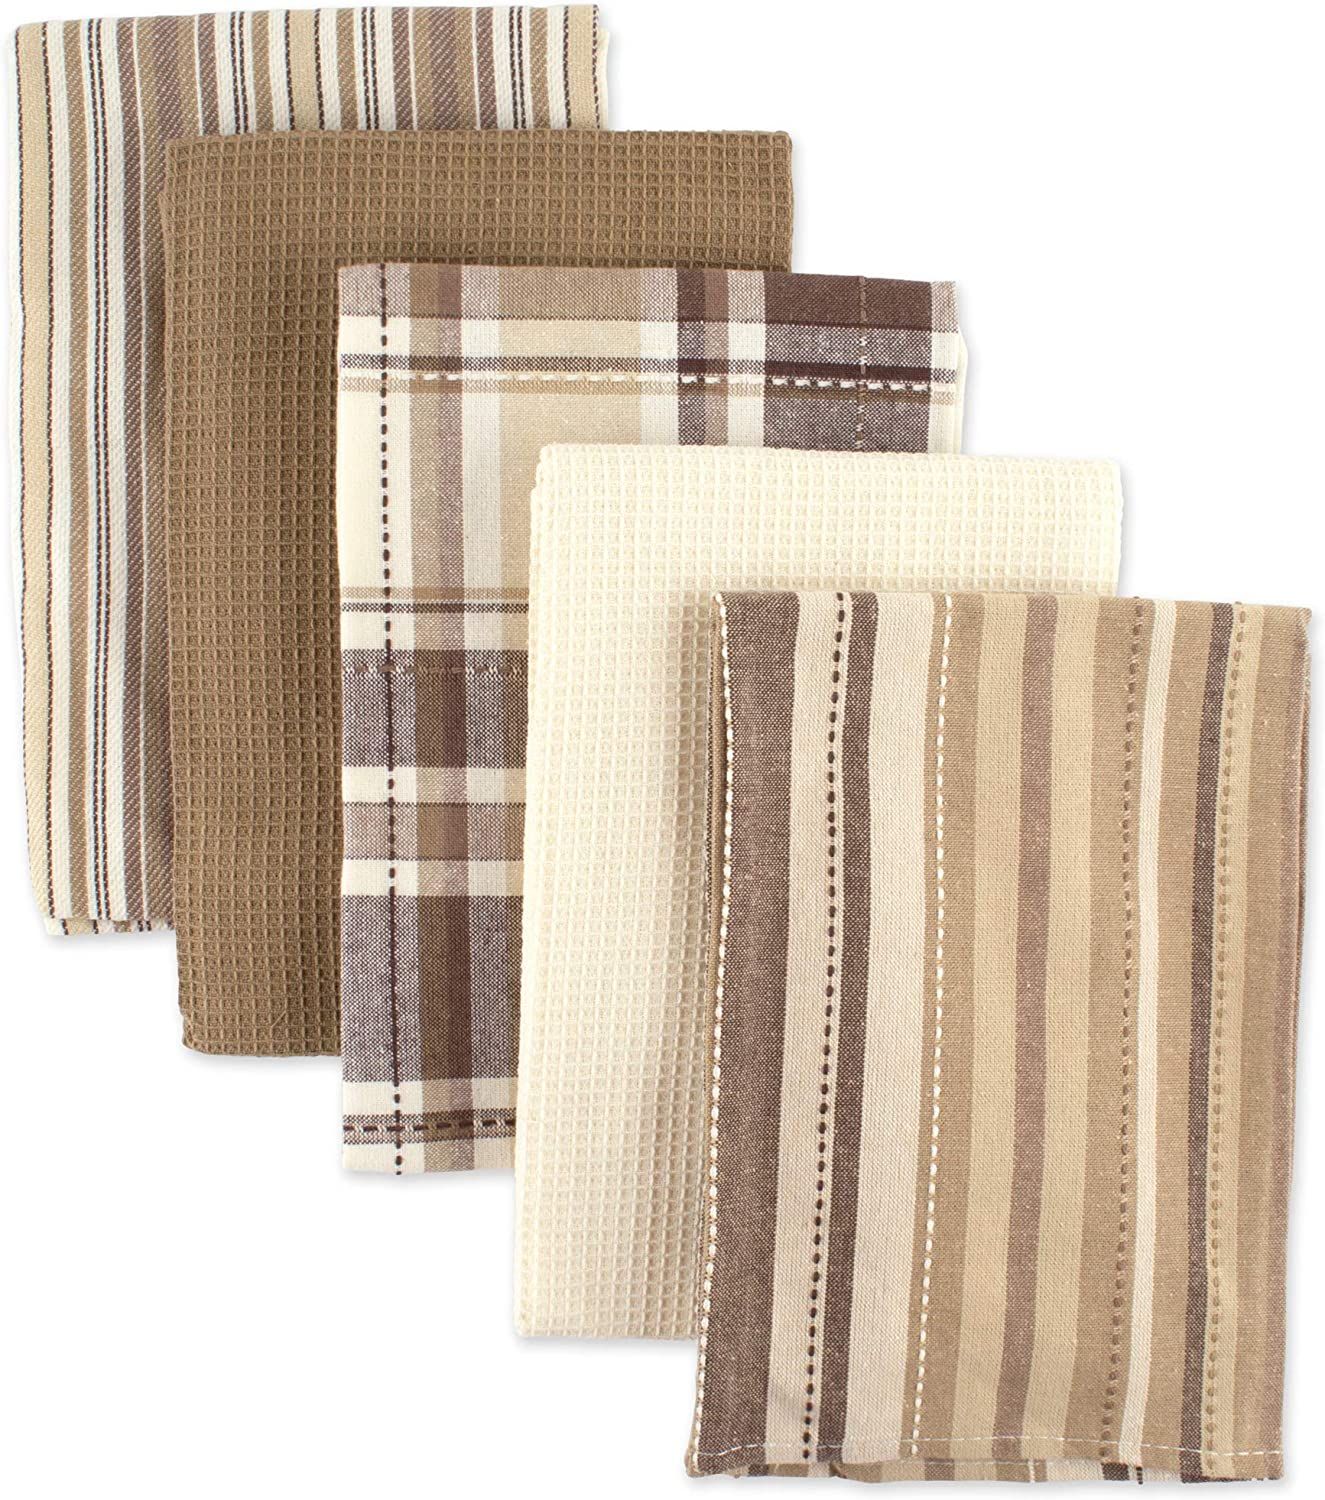 """DII Oversized Kitchen Towels (Taupe, 18x28""""), Ultra Absorbent & Fast Drying, Professional Grade Cotton Tea Towels for Everyday Cooking and Baking - Assorted Patterns, Set of 5"""